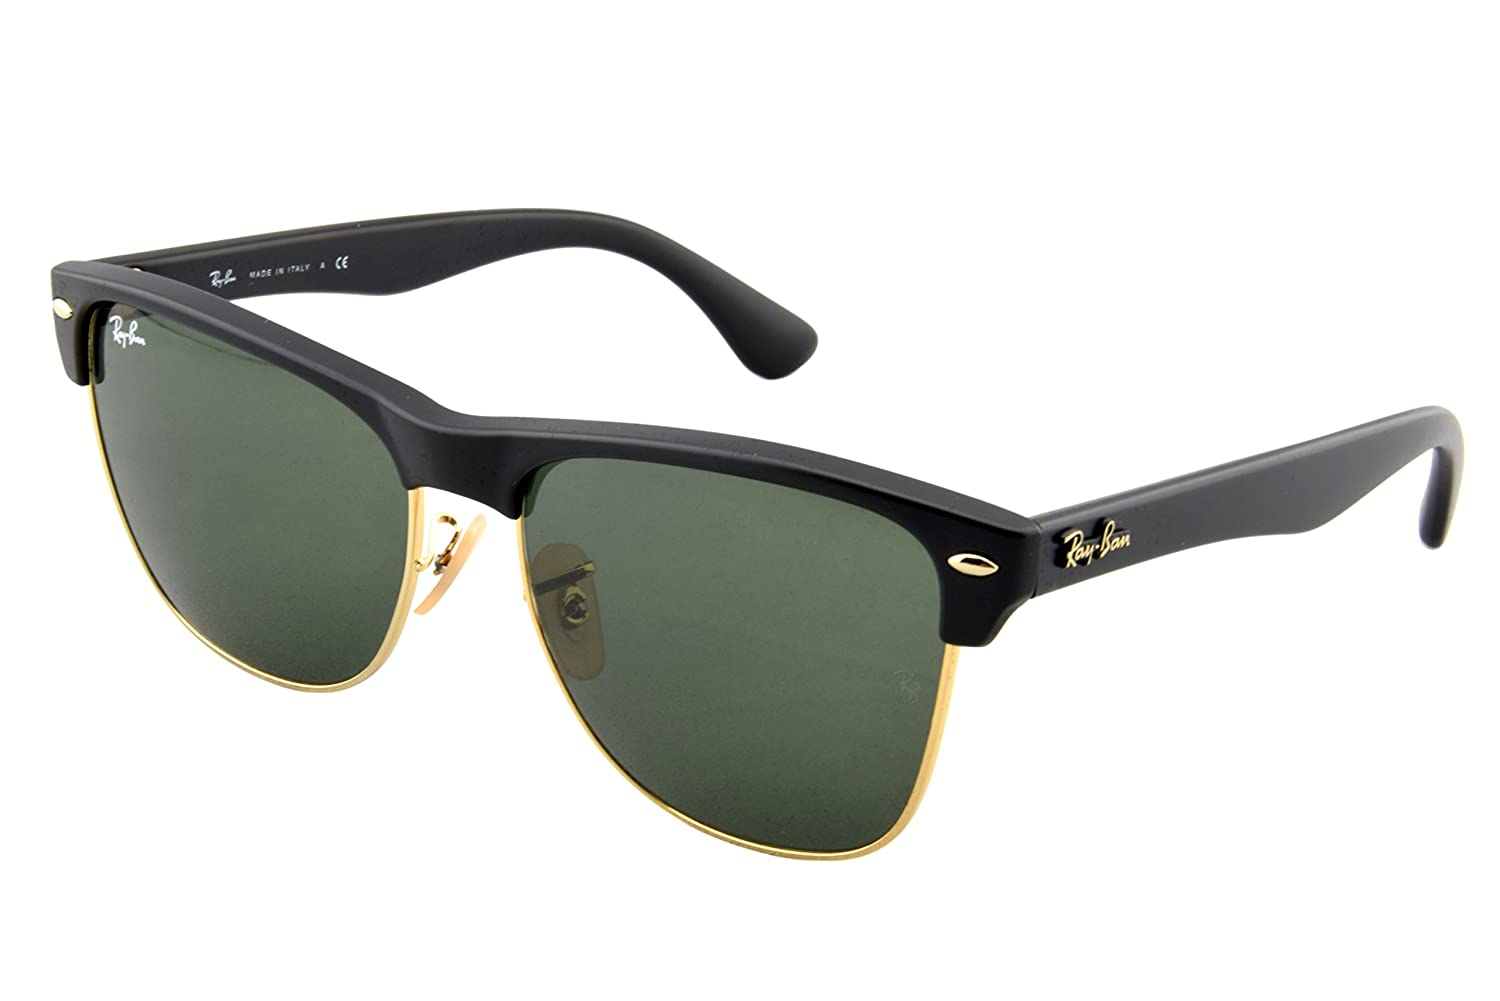 b86adb2872 How Much Do Ray Ban Sunglasses Cost In South Africa « Heritage Malta